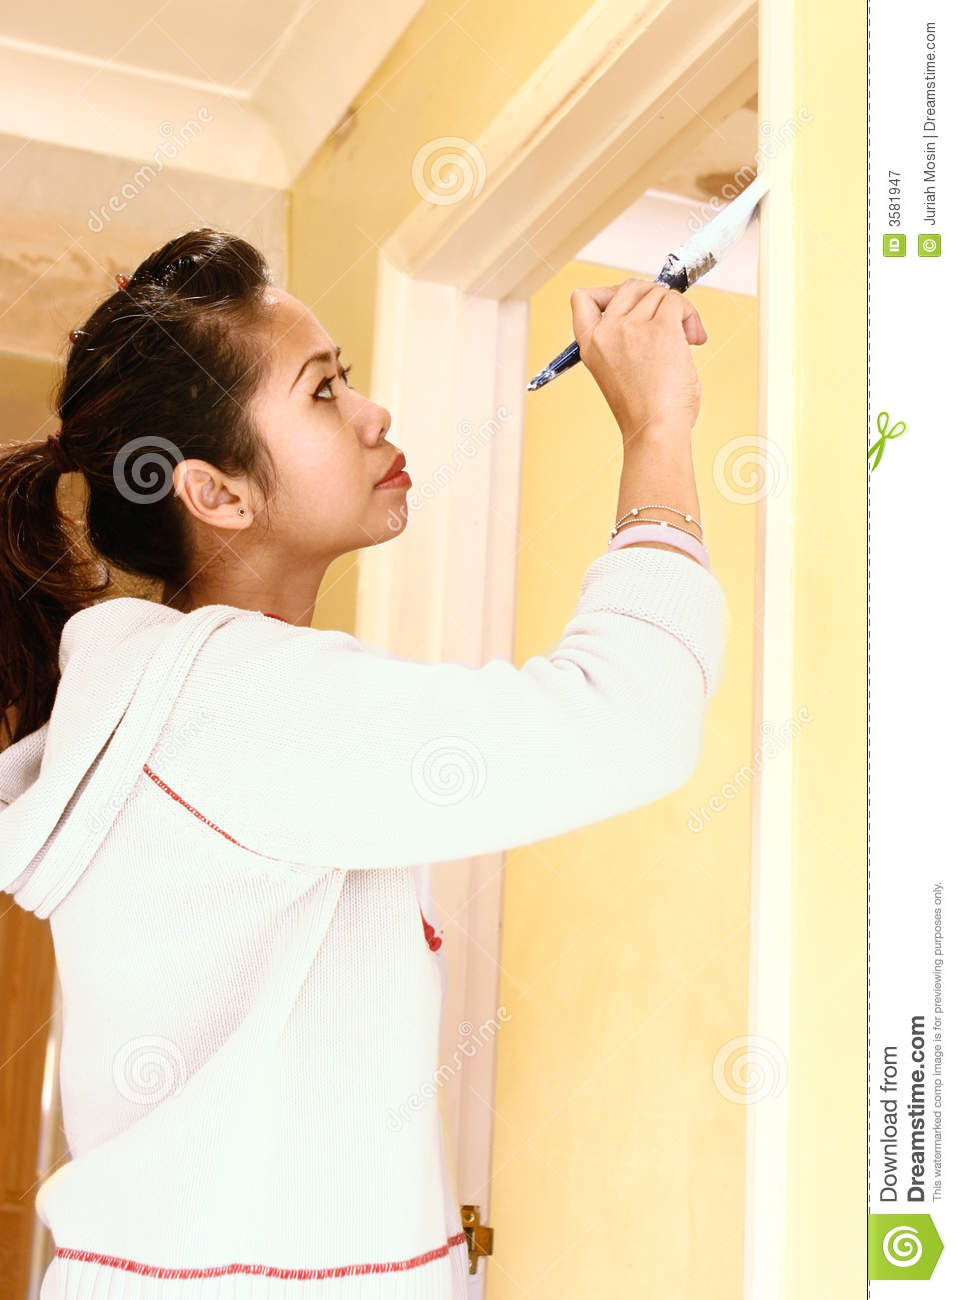 Asian Woman Painting Door Frame In The House.